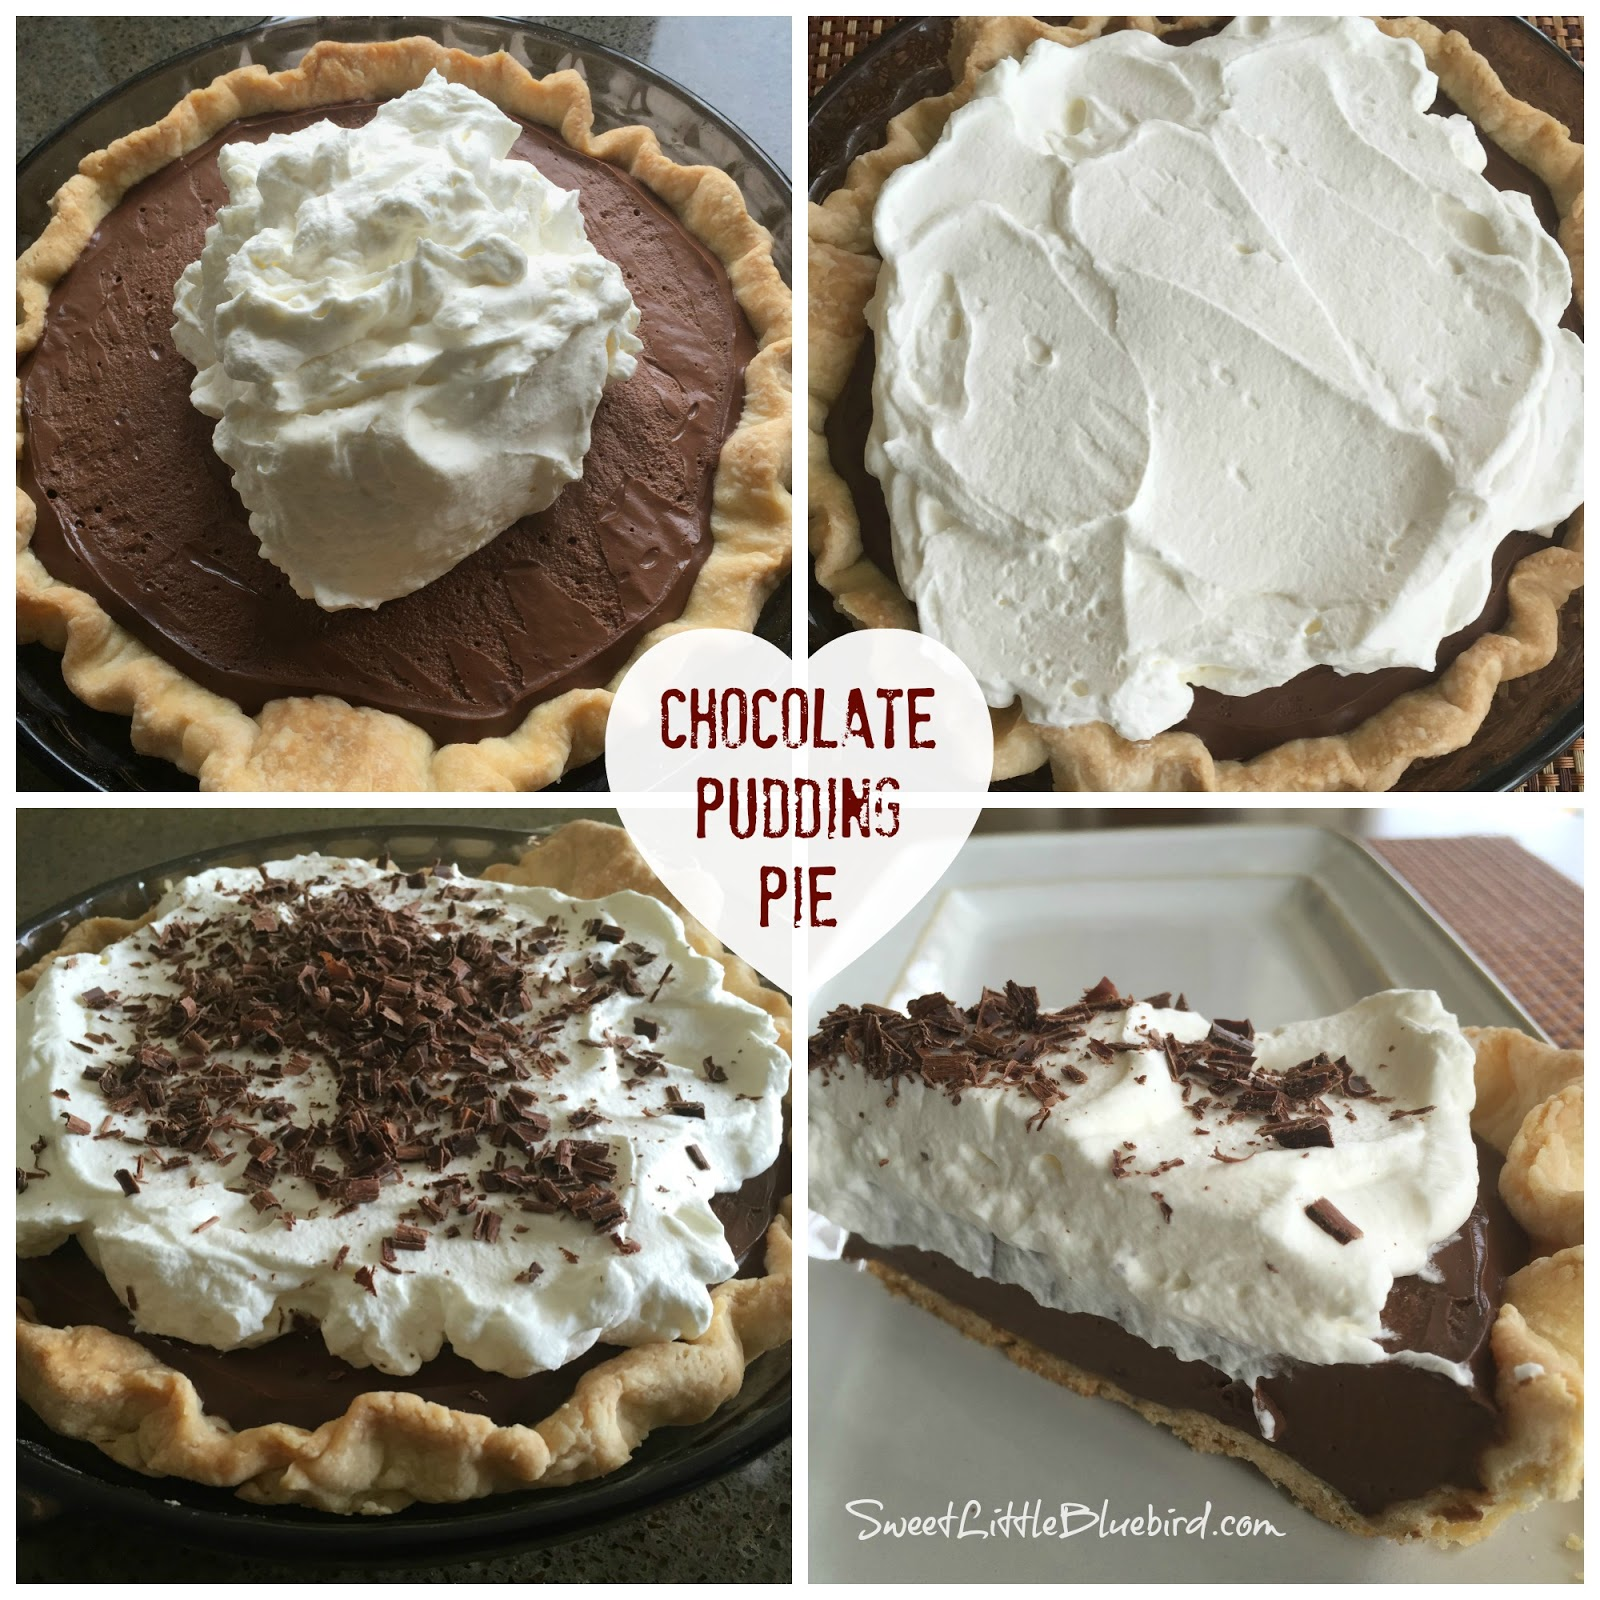 Sweet Little Bluebird: The Best Homemade Chocolate Pudding Pie